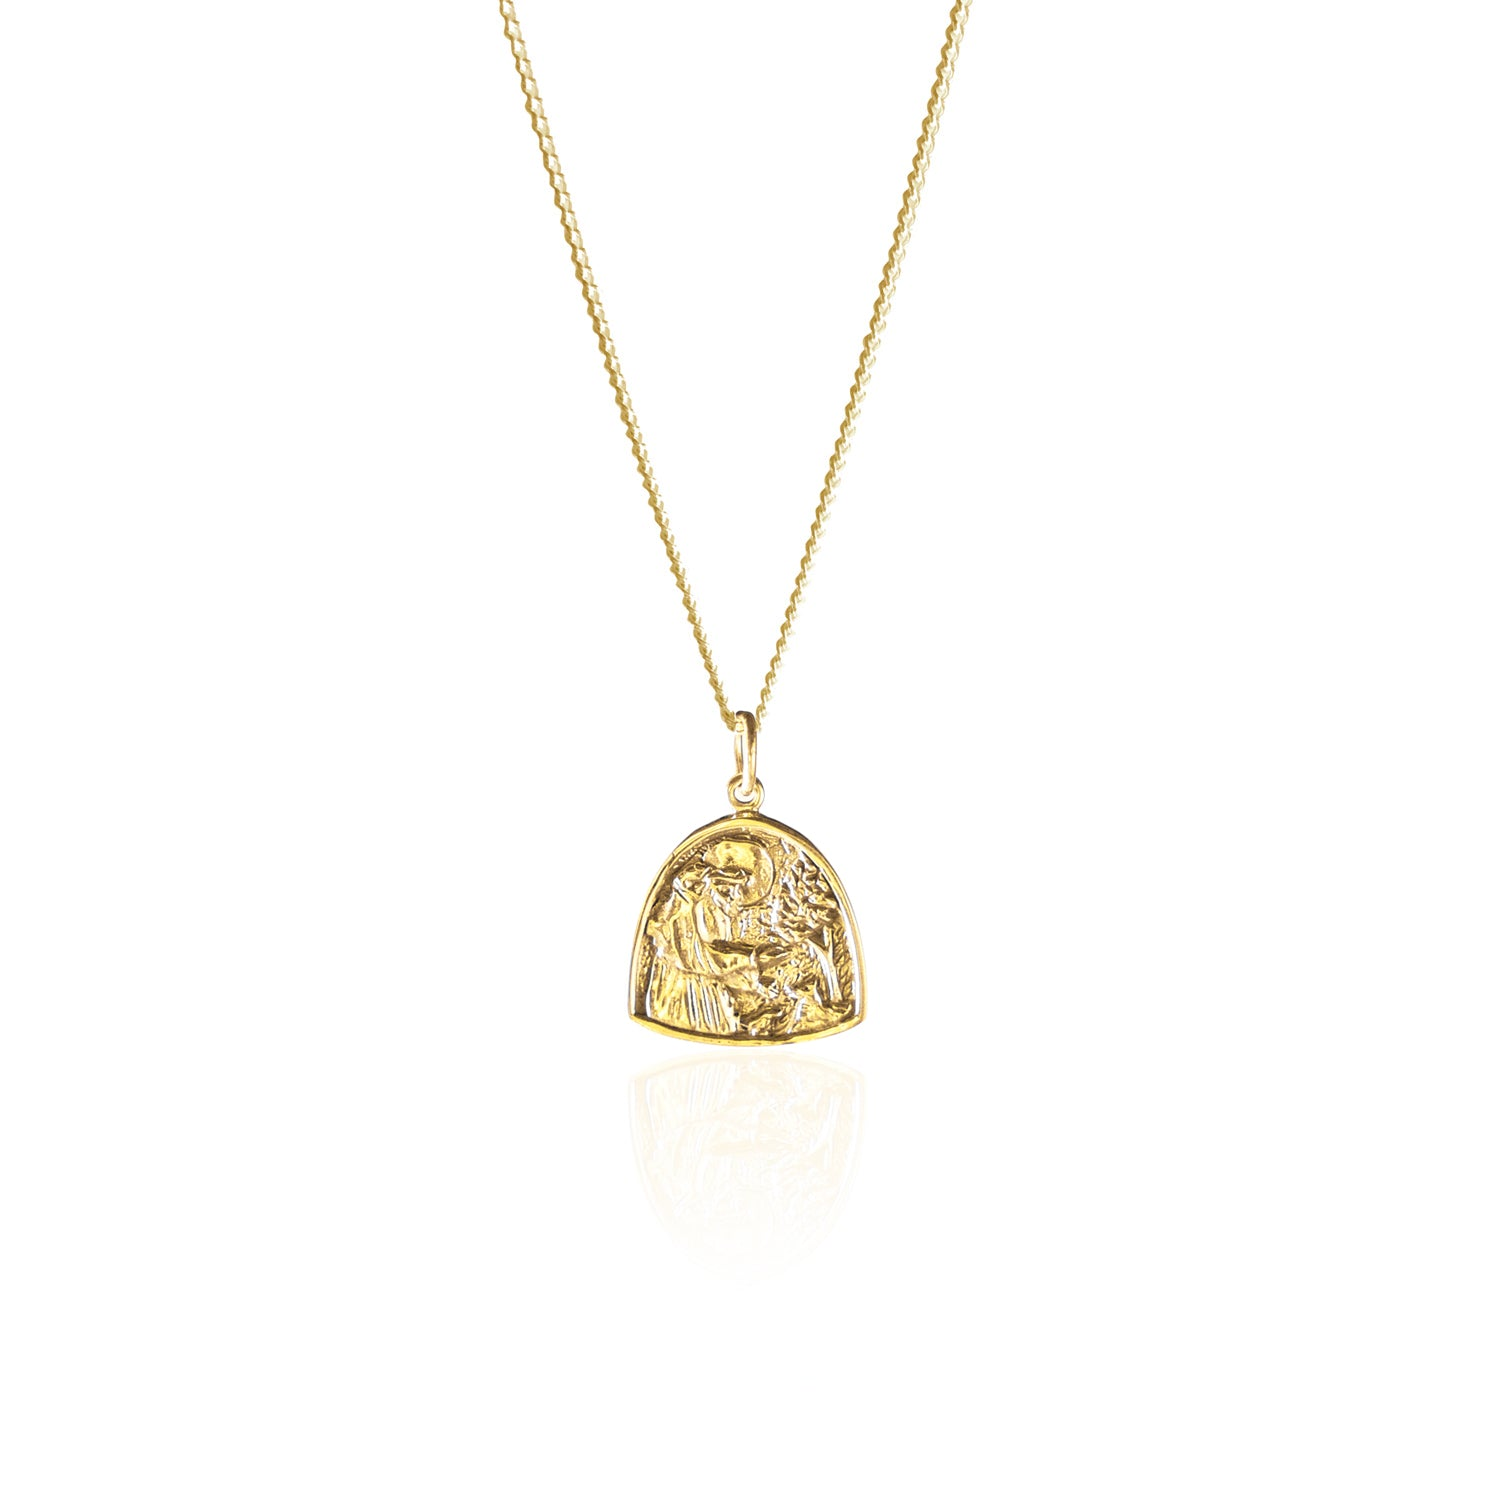 St Assisi Patron Saint of Animals Pendant made from Recycled Sterling Silver and 18kt Gold